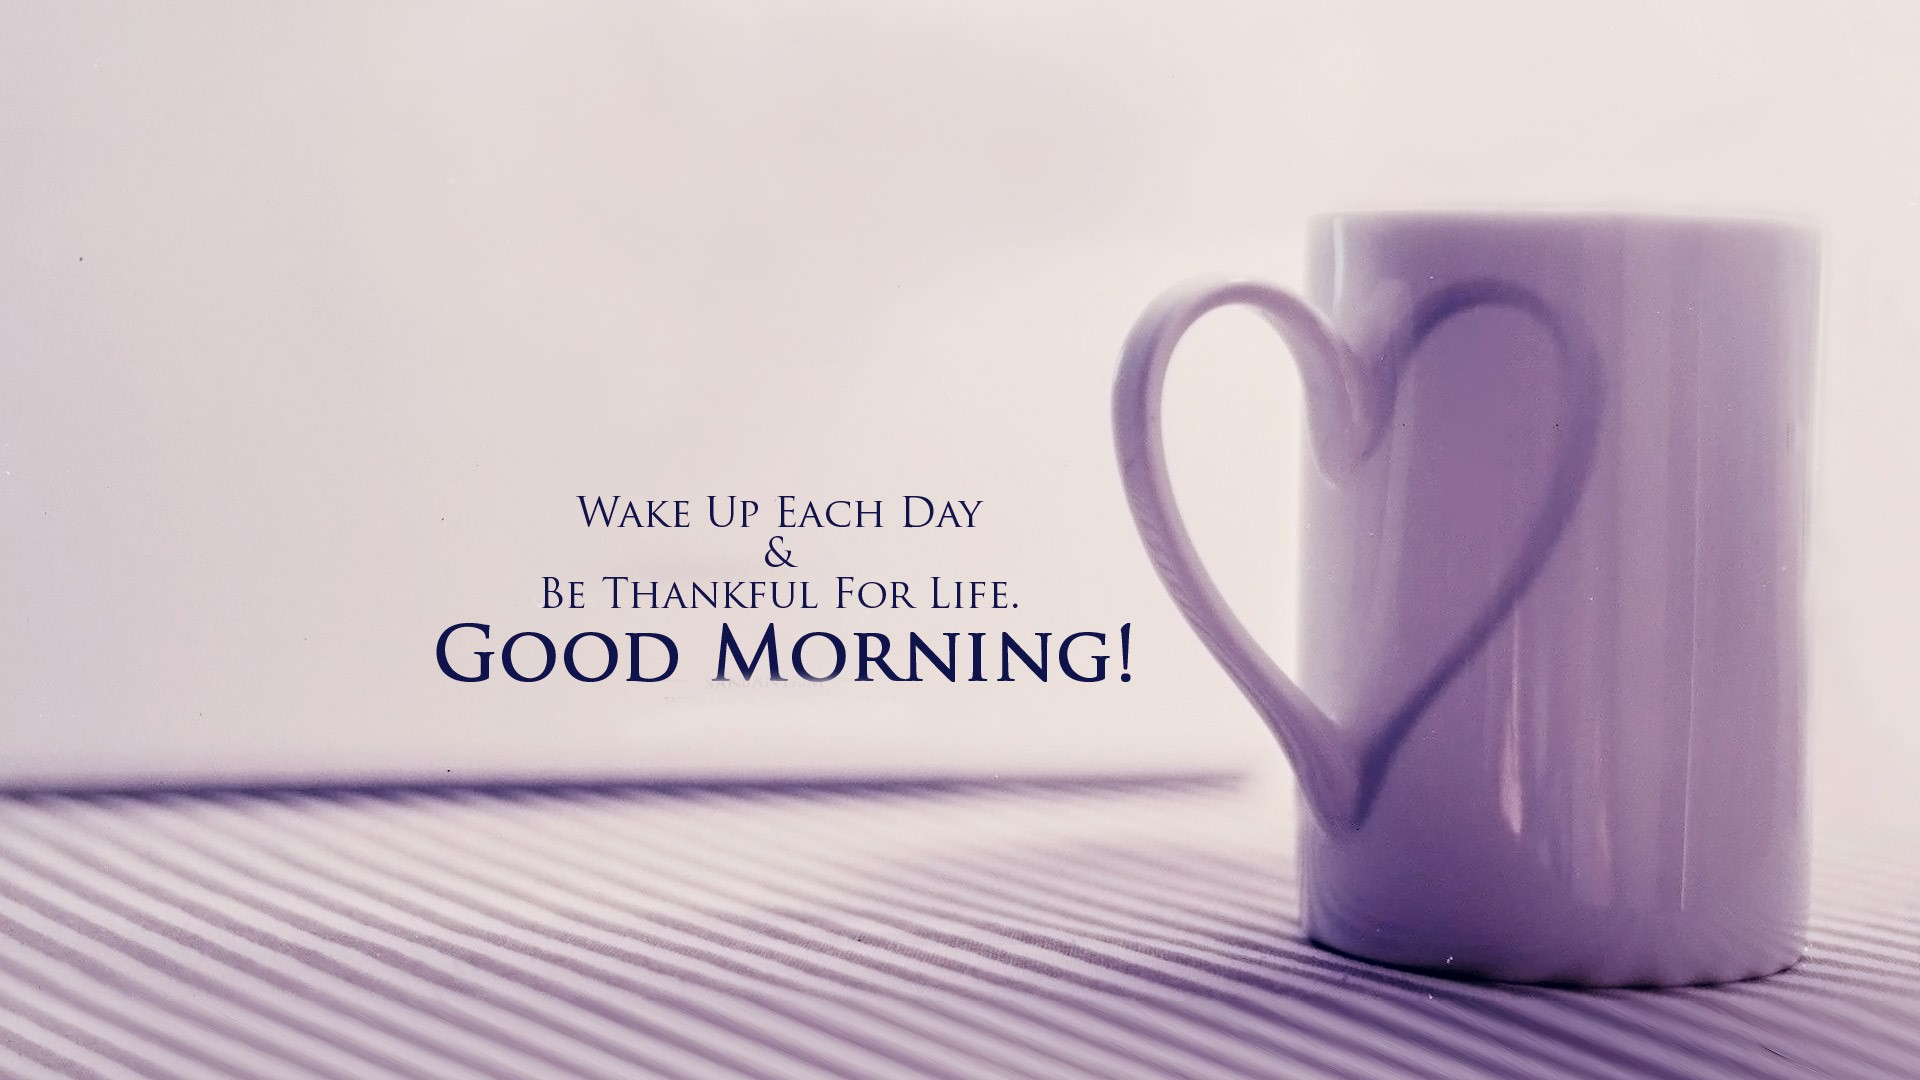 Good Morning Wishes Wallpaper Wallpapersafari